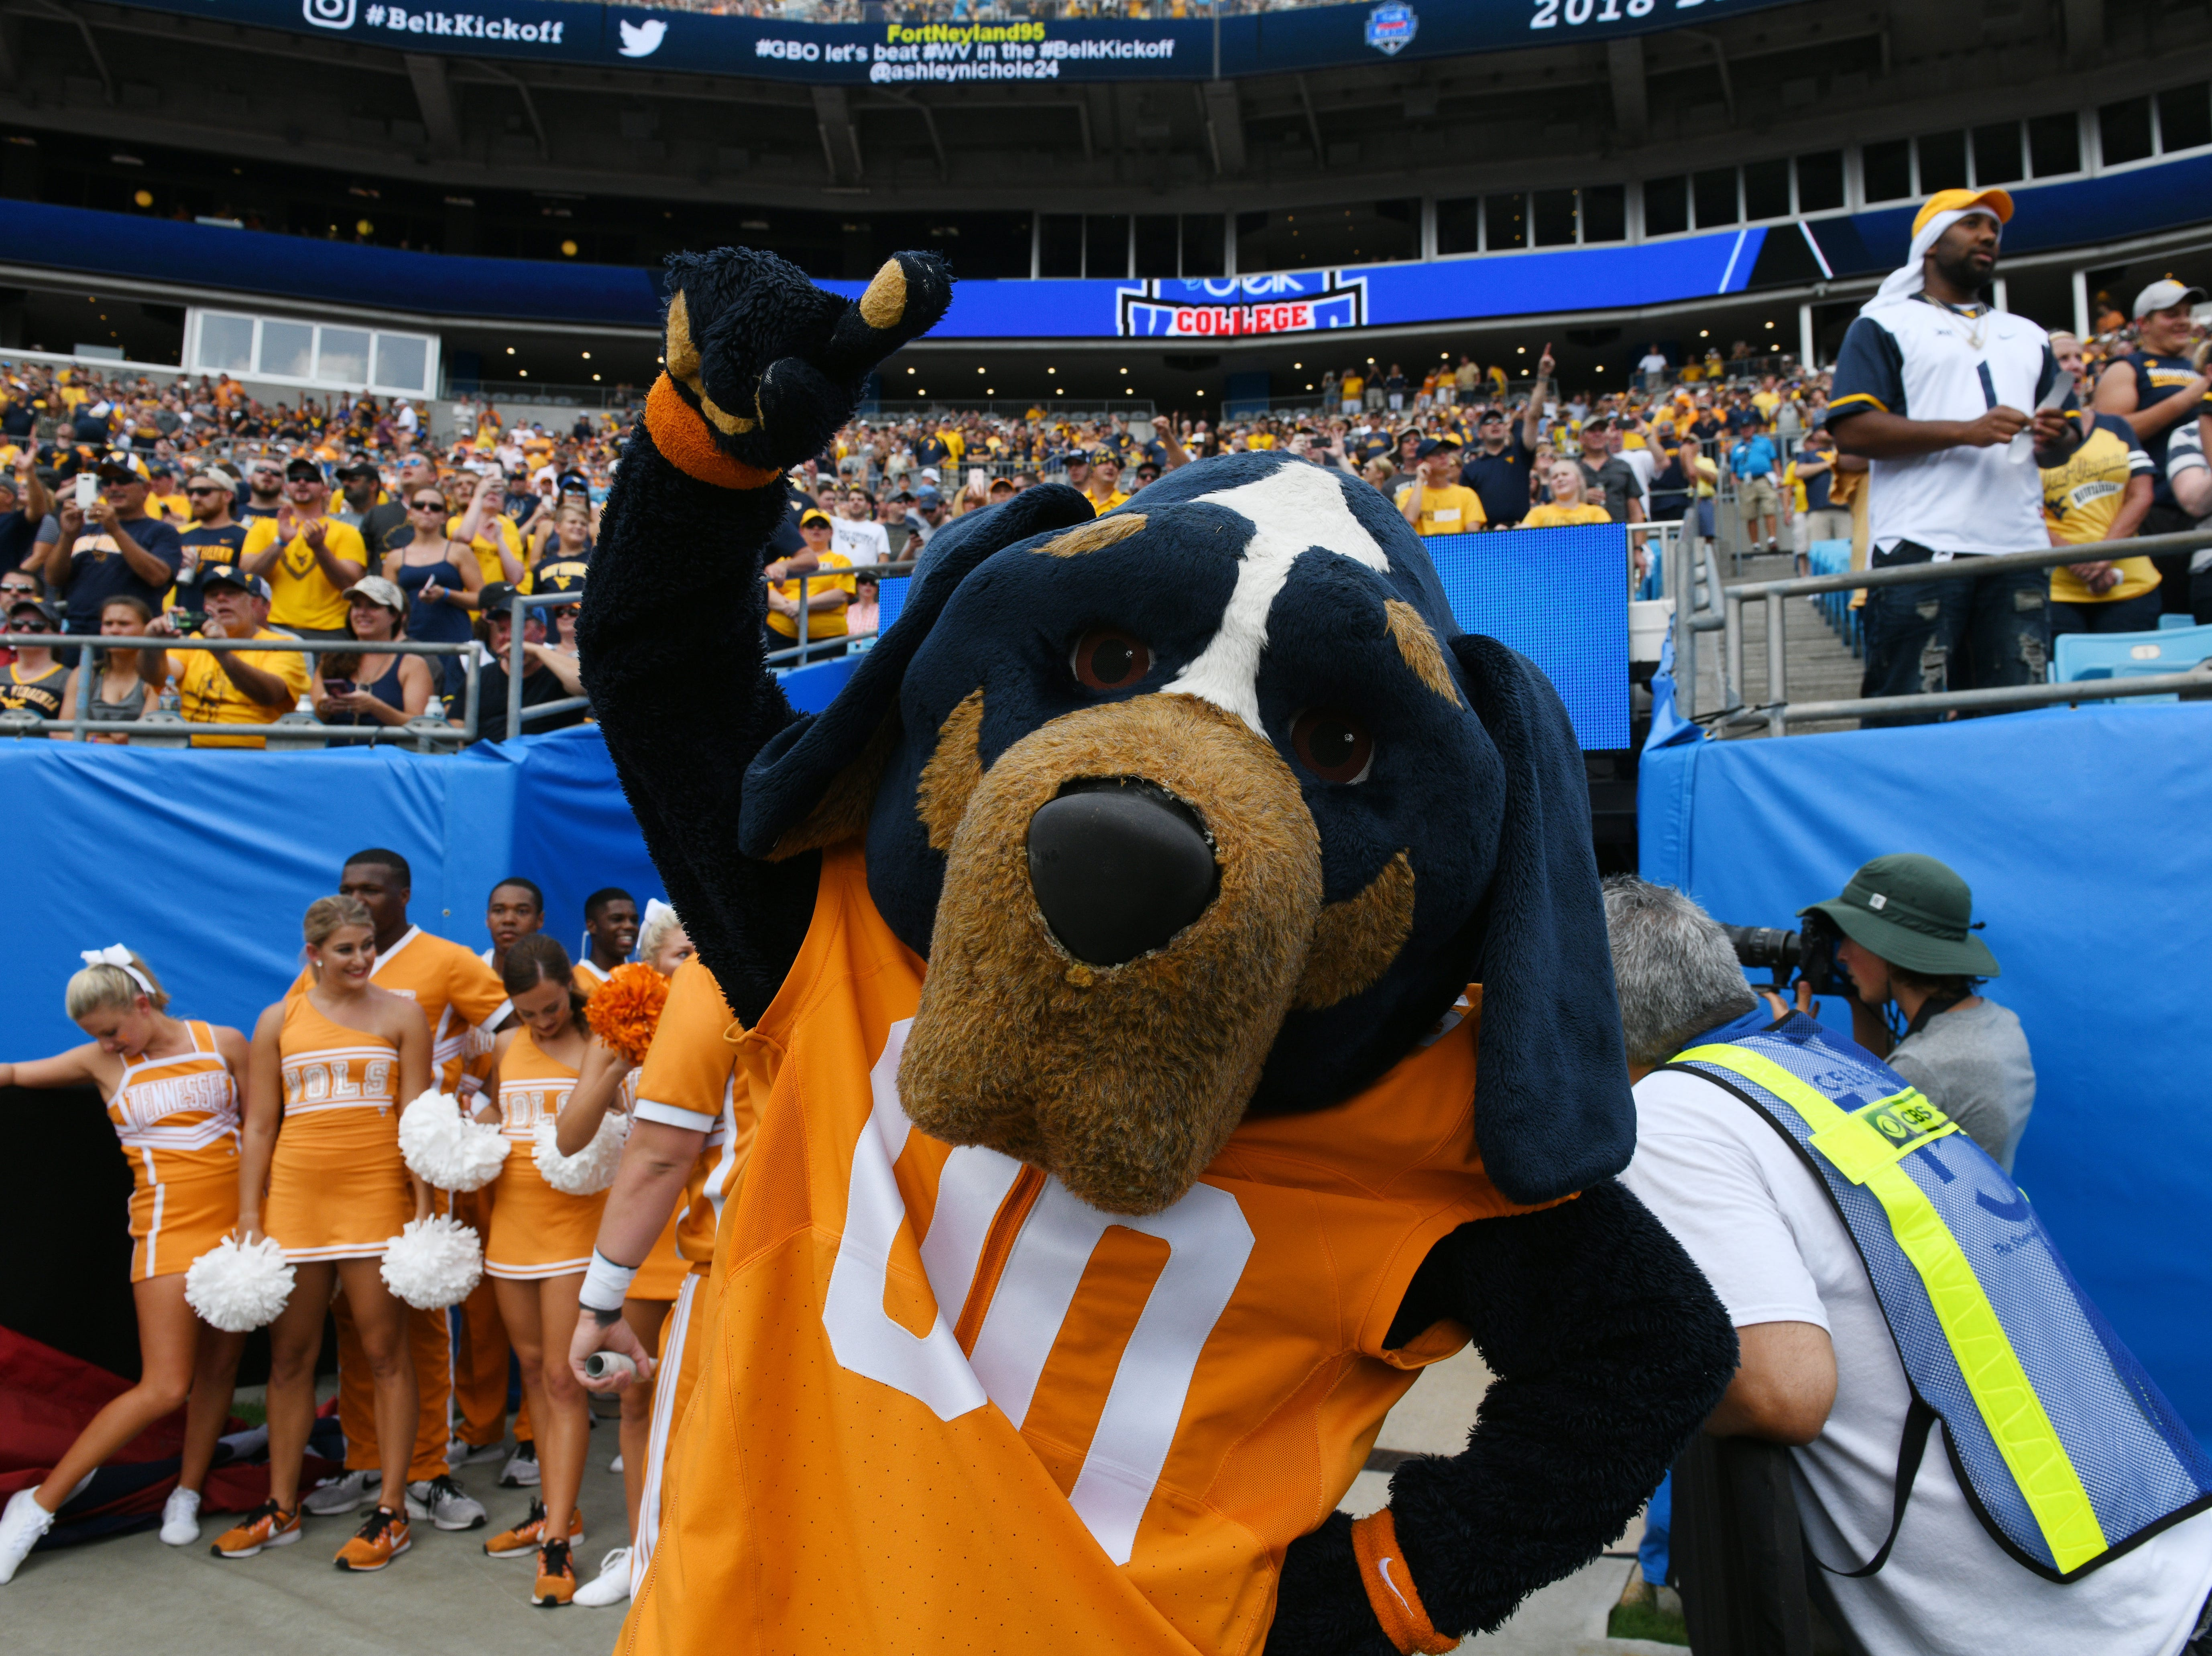 Smokey cheers during the Belk College Kickoff between Tennessee and West Virginia at Bank of America Stadium in Charlotte, North Carolina on Saturday, September 1, 2018.